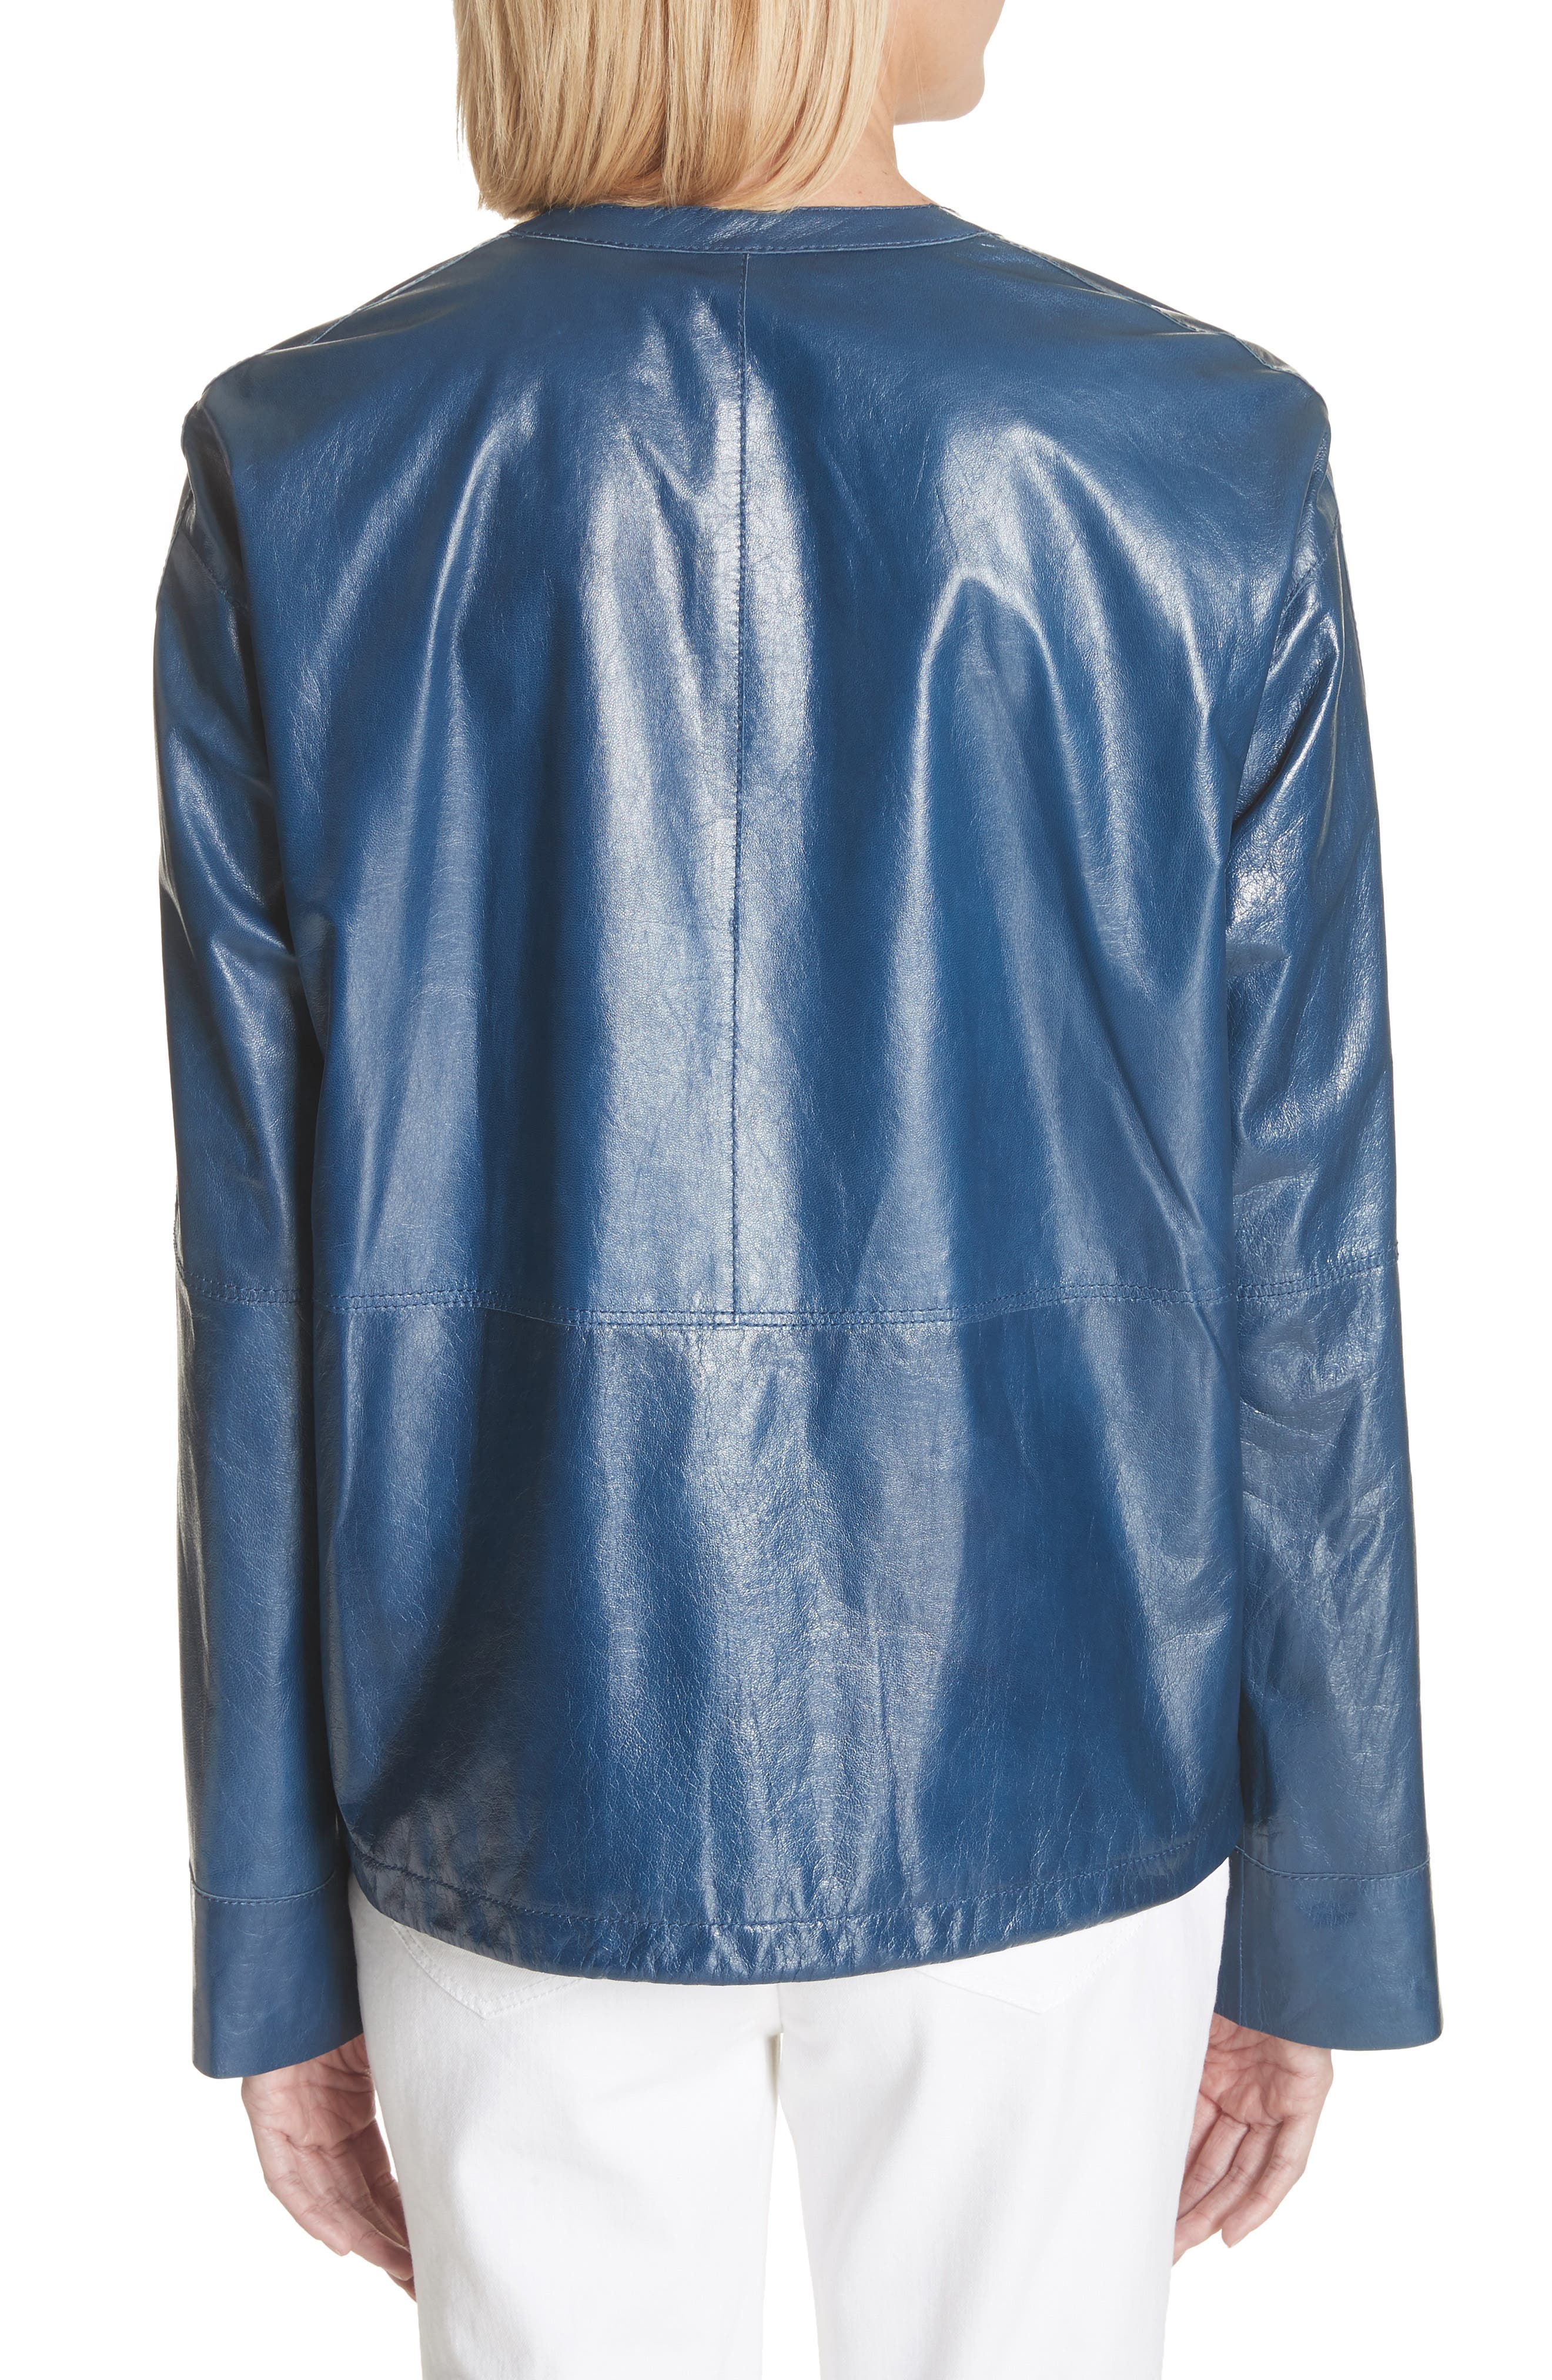 Fleming Leather Jacket,                             Alternate thumbnail 2, color,                             Majolica Blue